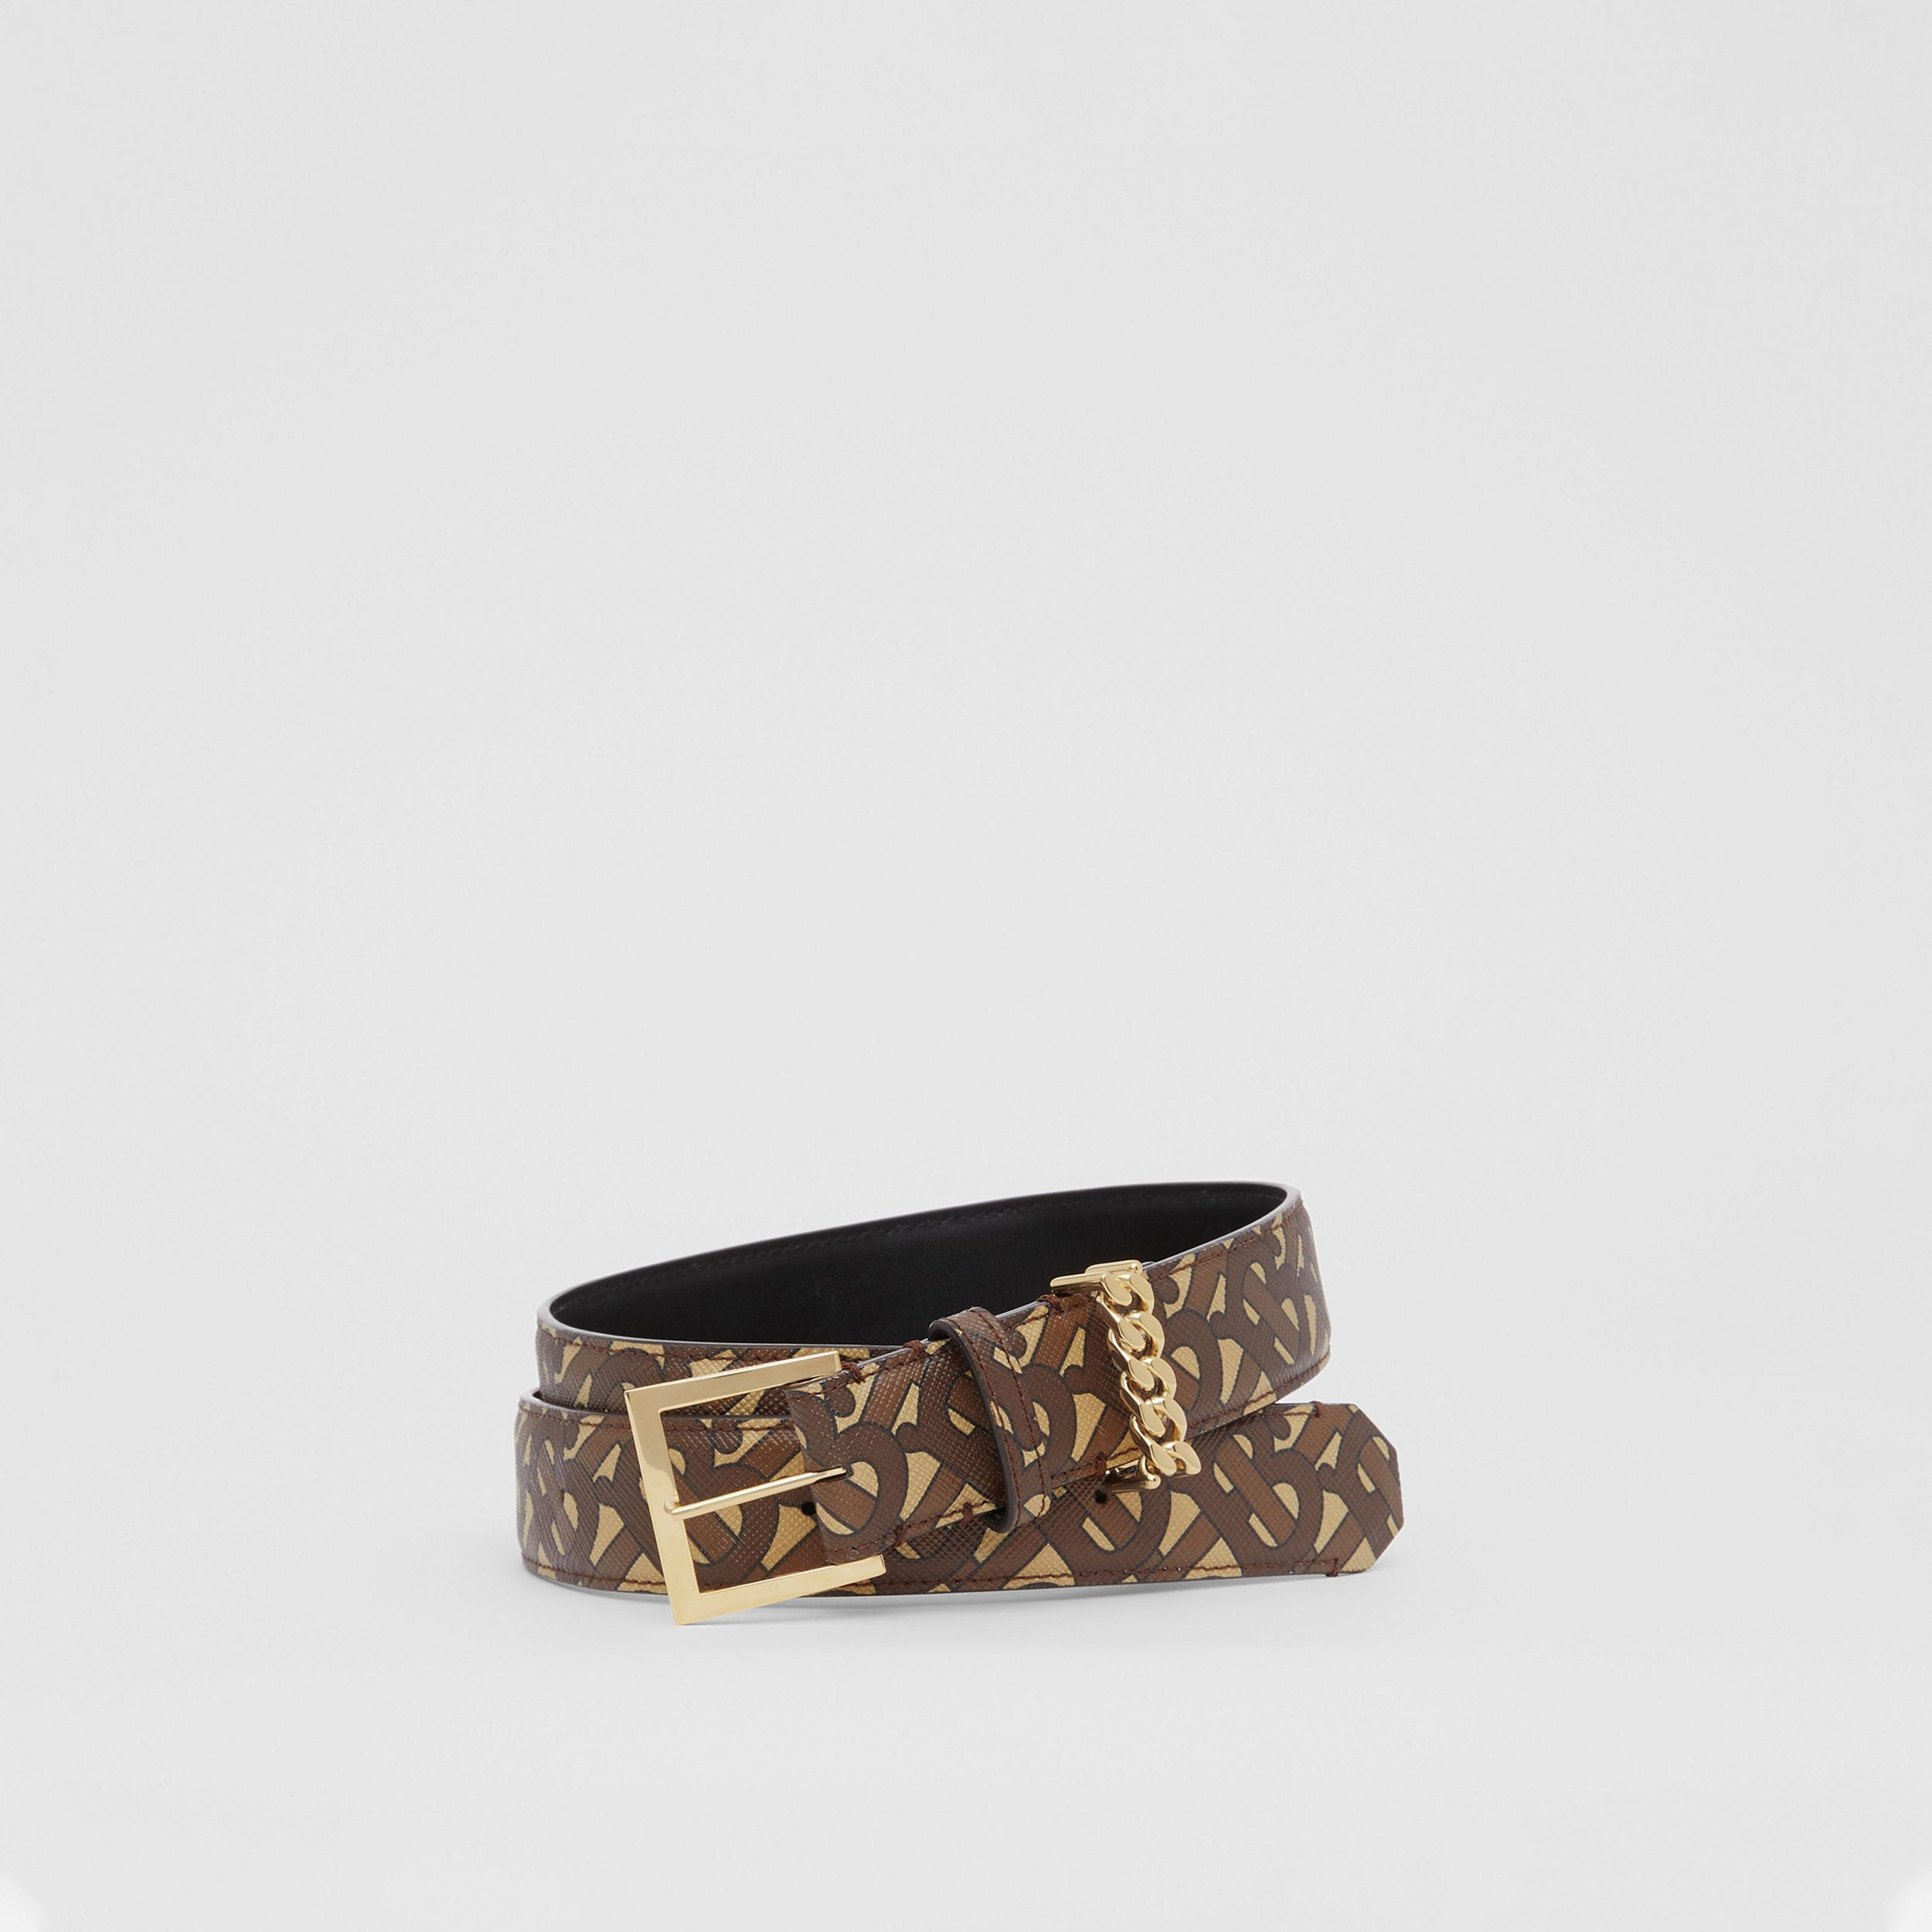 Chain Detail Monogram Print E-canvas Belt in Bridle Brown - Women | Burberry - 1